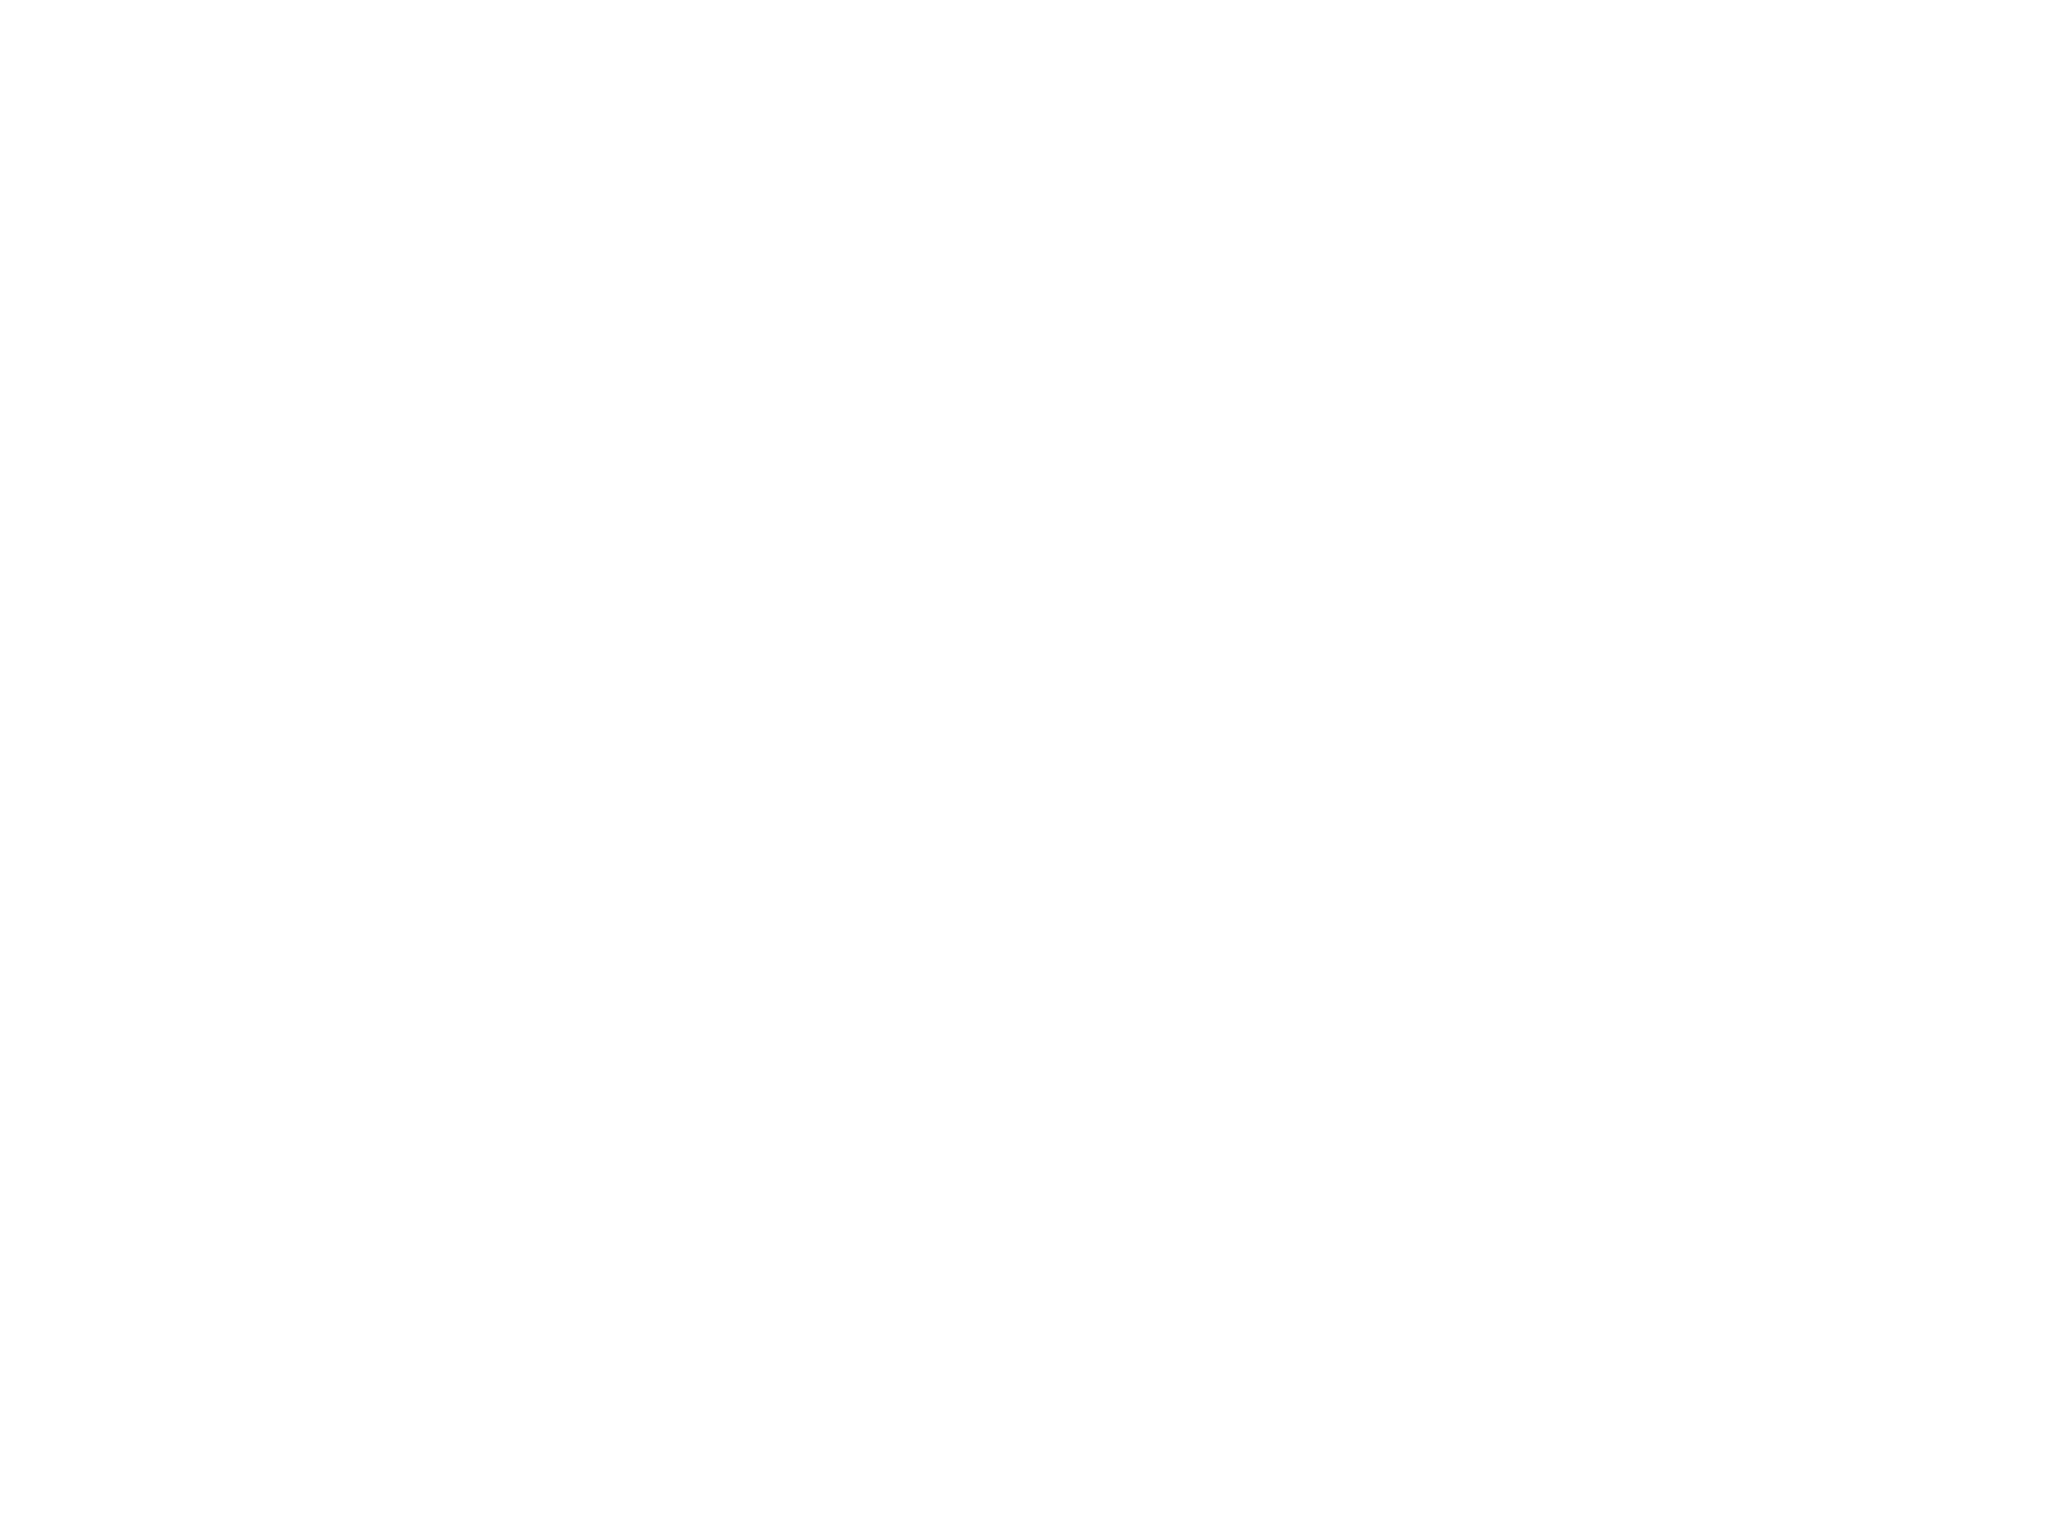 202號房 日式矮床房+溫泉室內風呂 (Guestroom with Japanese-style Beds & Indoor Hot Spring Bath (No. 202))